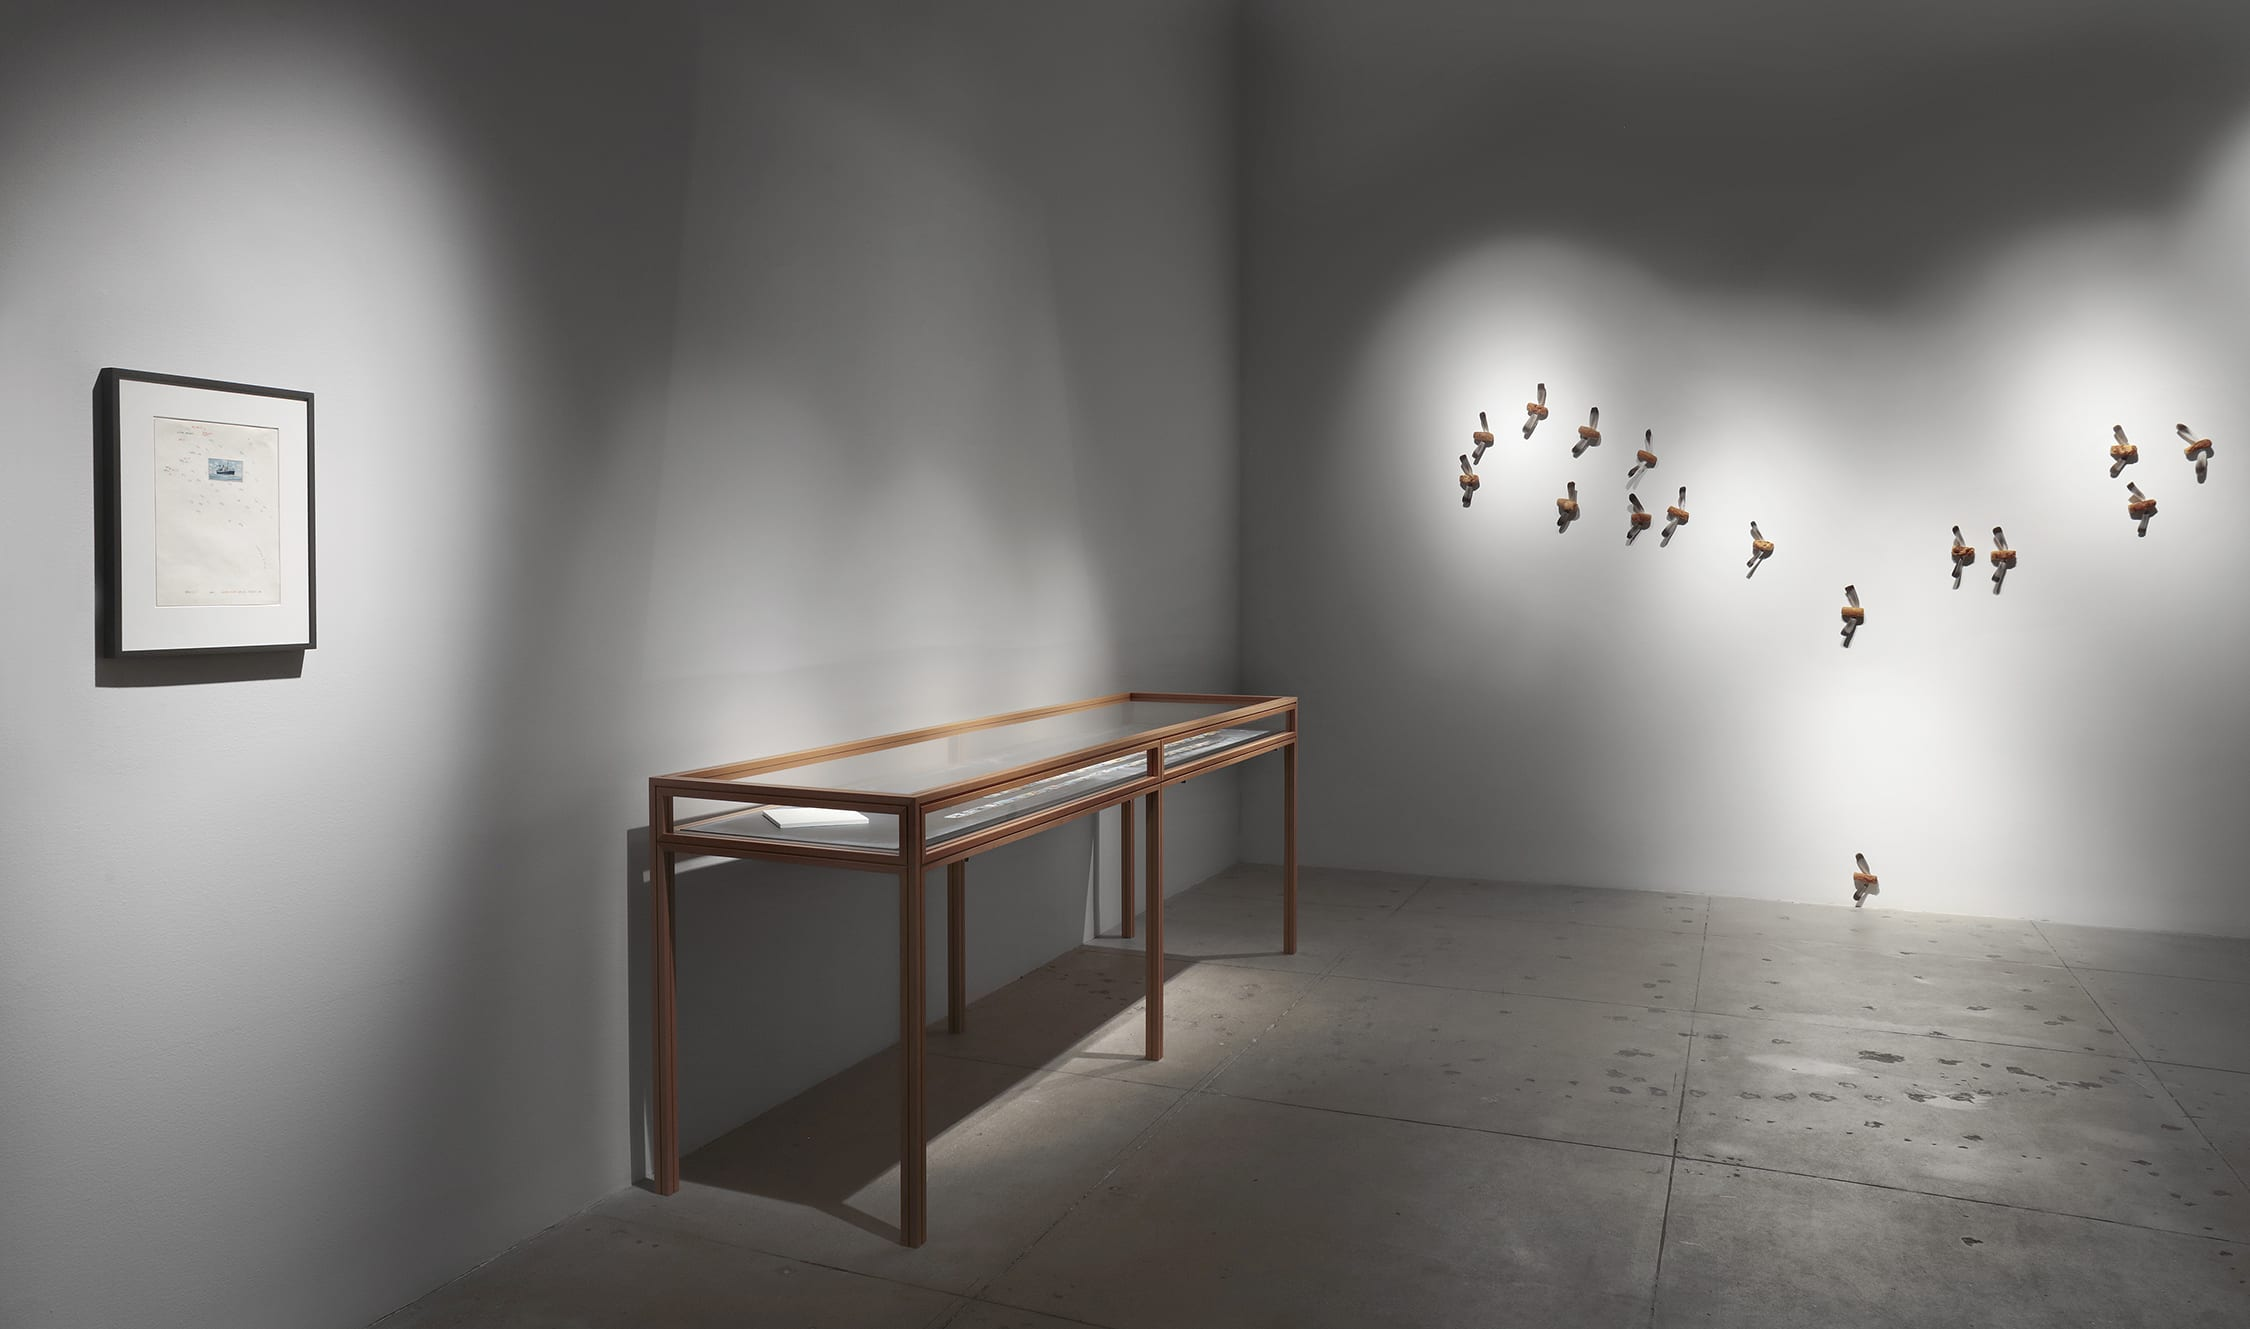 Installation view of Lothar Baumgarten exhibition, containing depictions of mosquitoes out of bread (right).